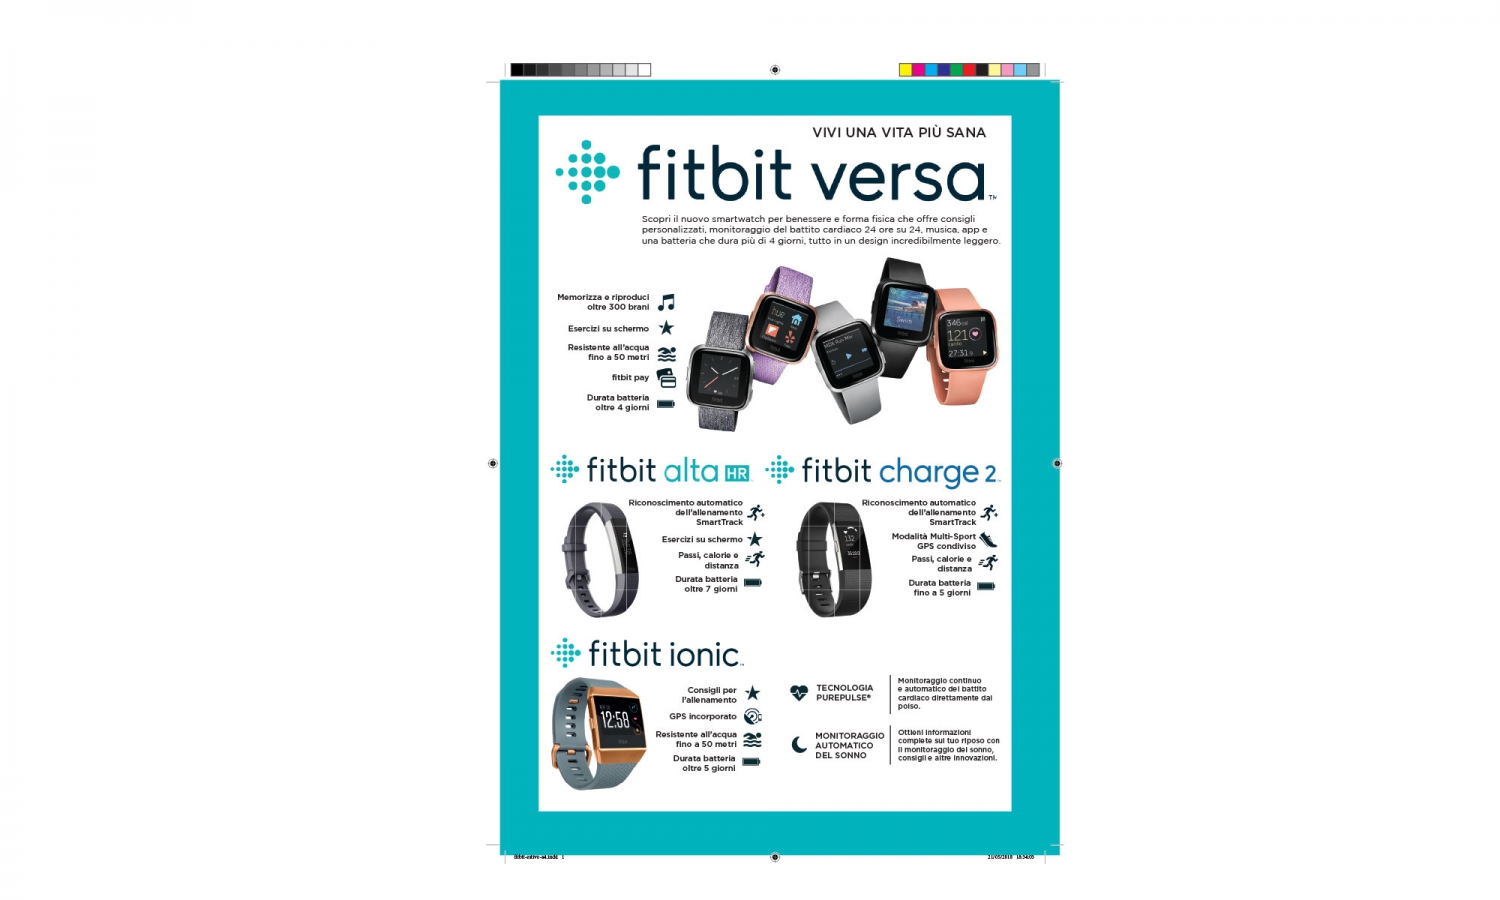 fitbit versa alta hr charge 2 ionic